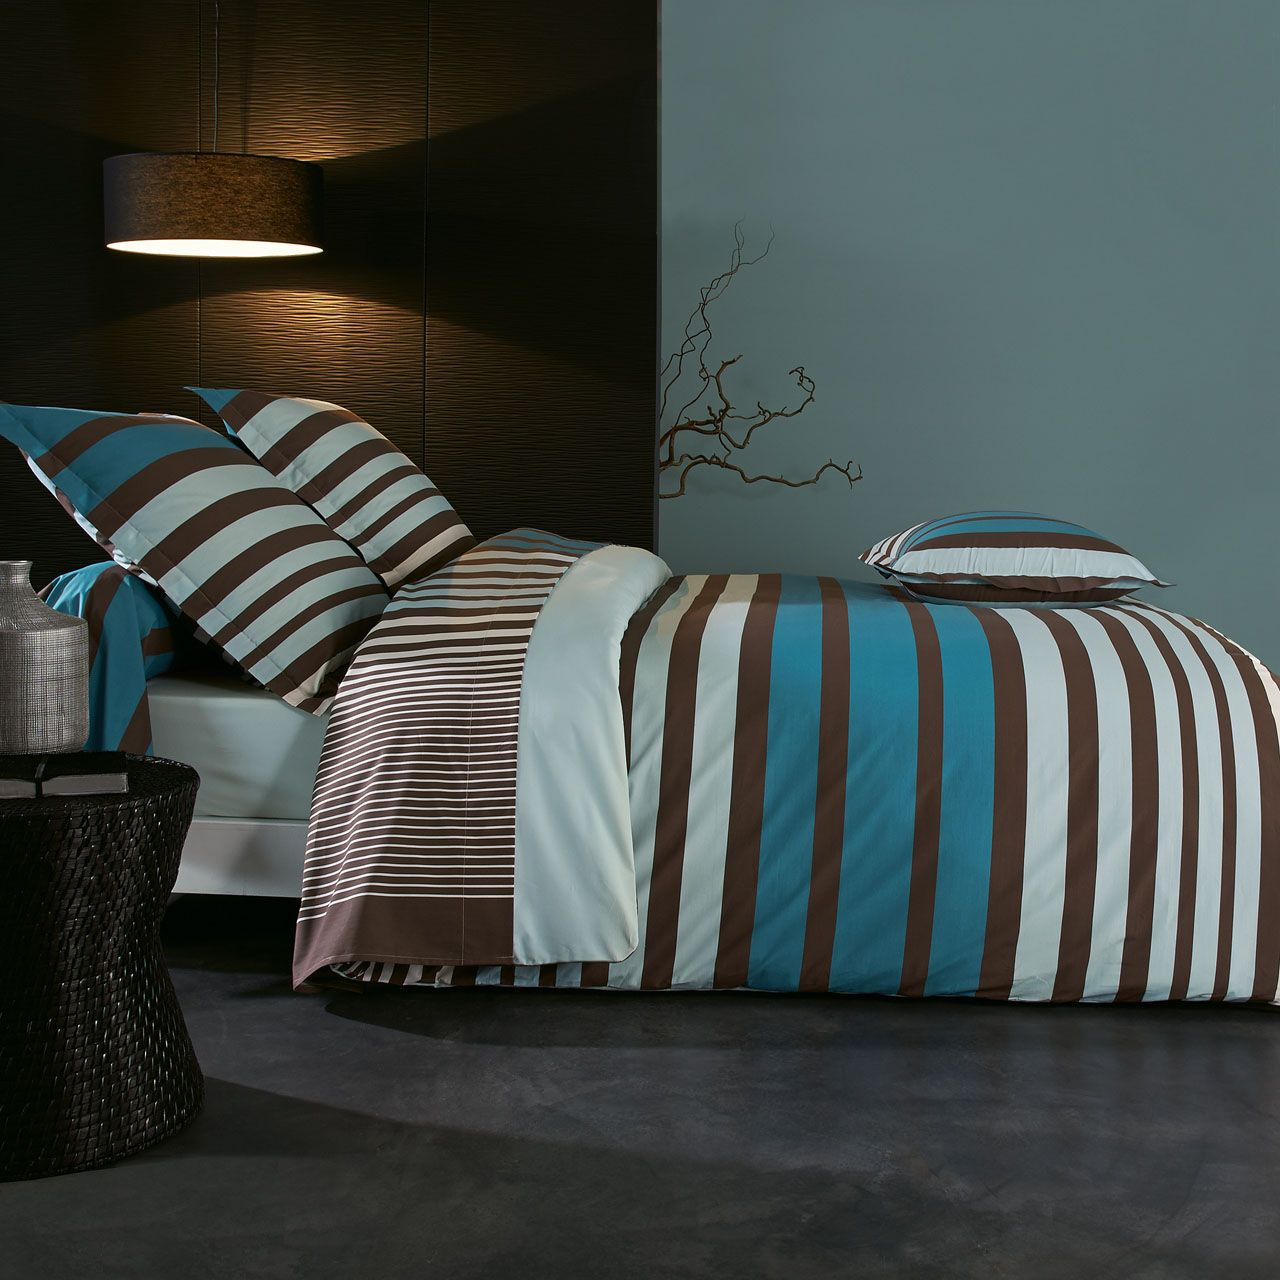 drap housse percale stripe bleu 90x190 tradilinge. Black Bedroom Furniture Sets. Home Design Ideas